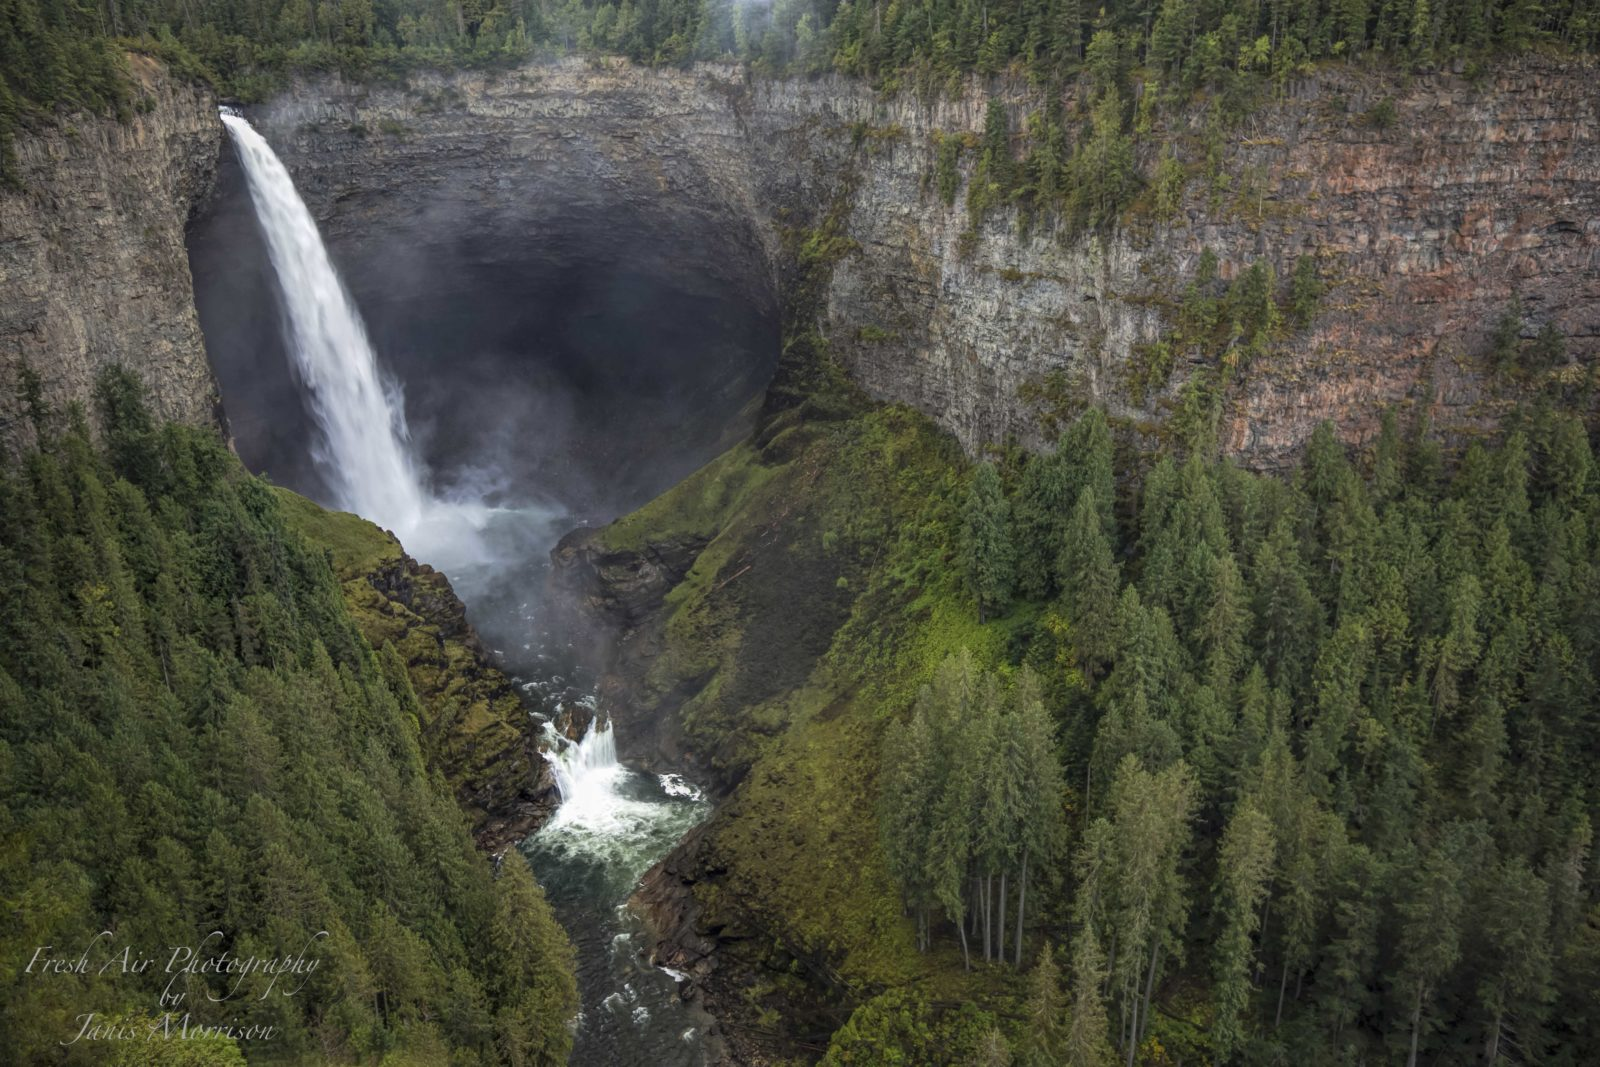 The Power of Helmcken Falls